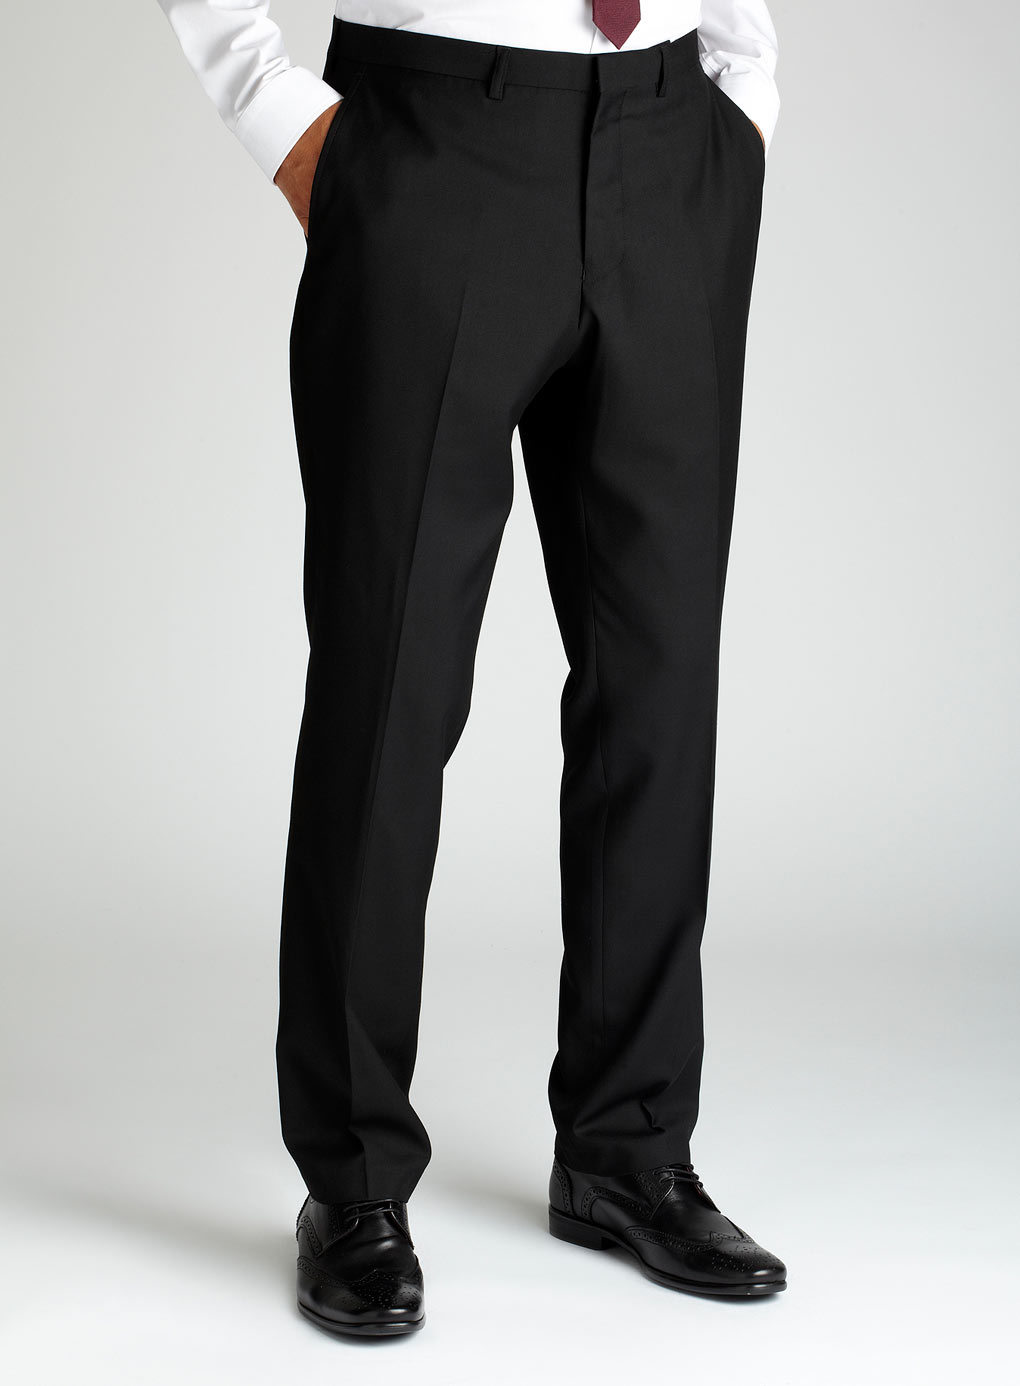 Mens Formal Pants - Pi Pants